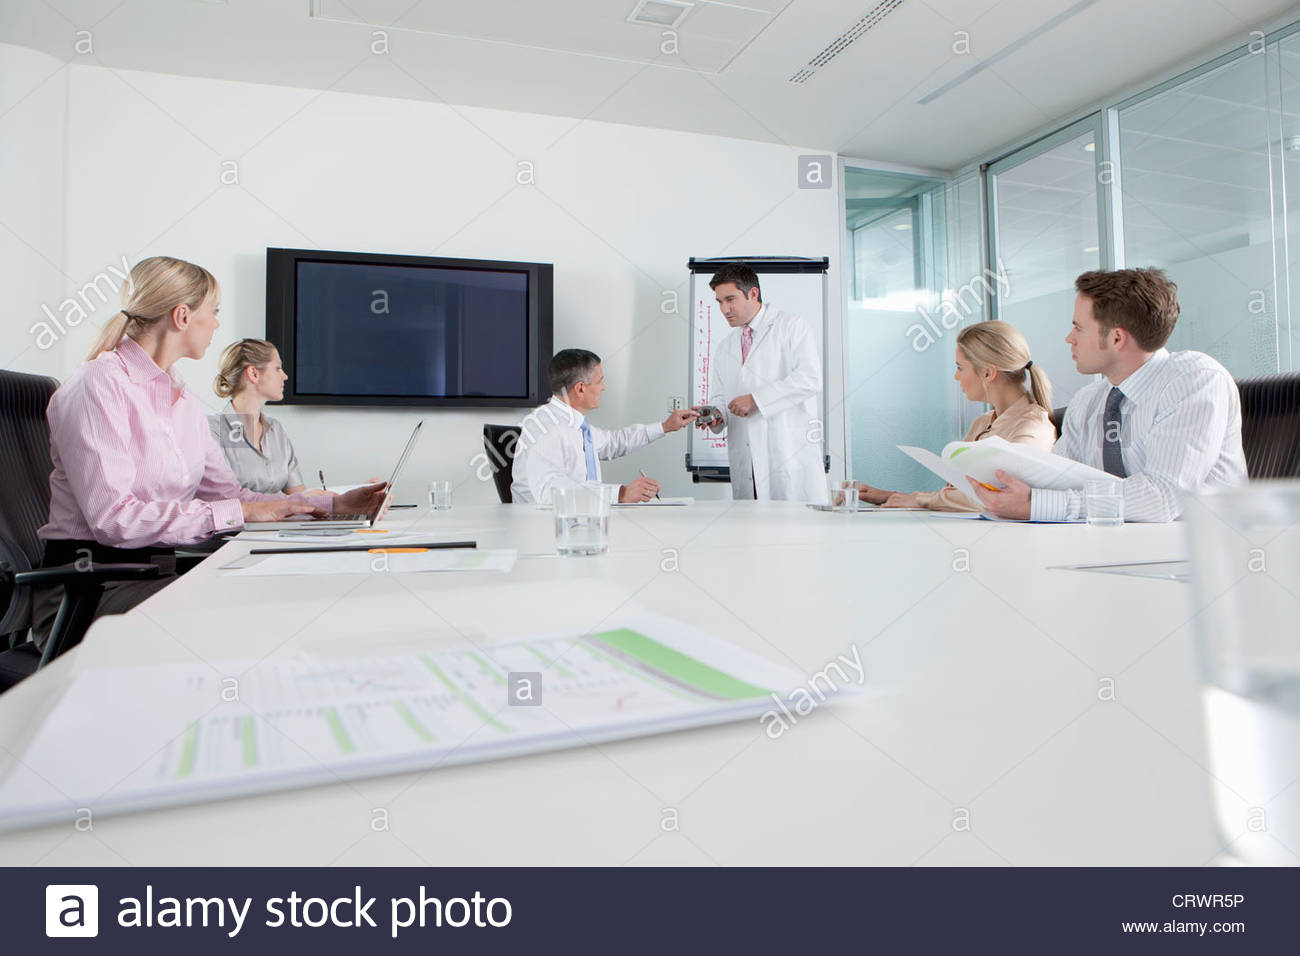 Engineer in lab coat leading meeting with business people in conference room - Stock Image